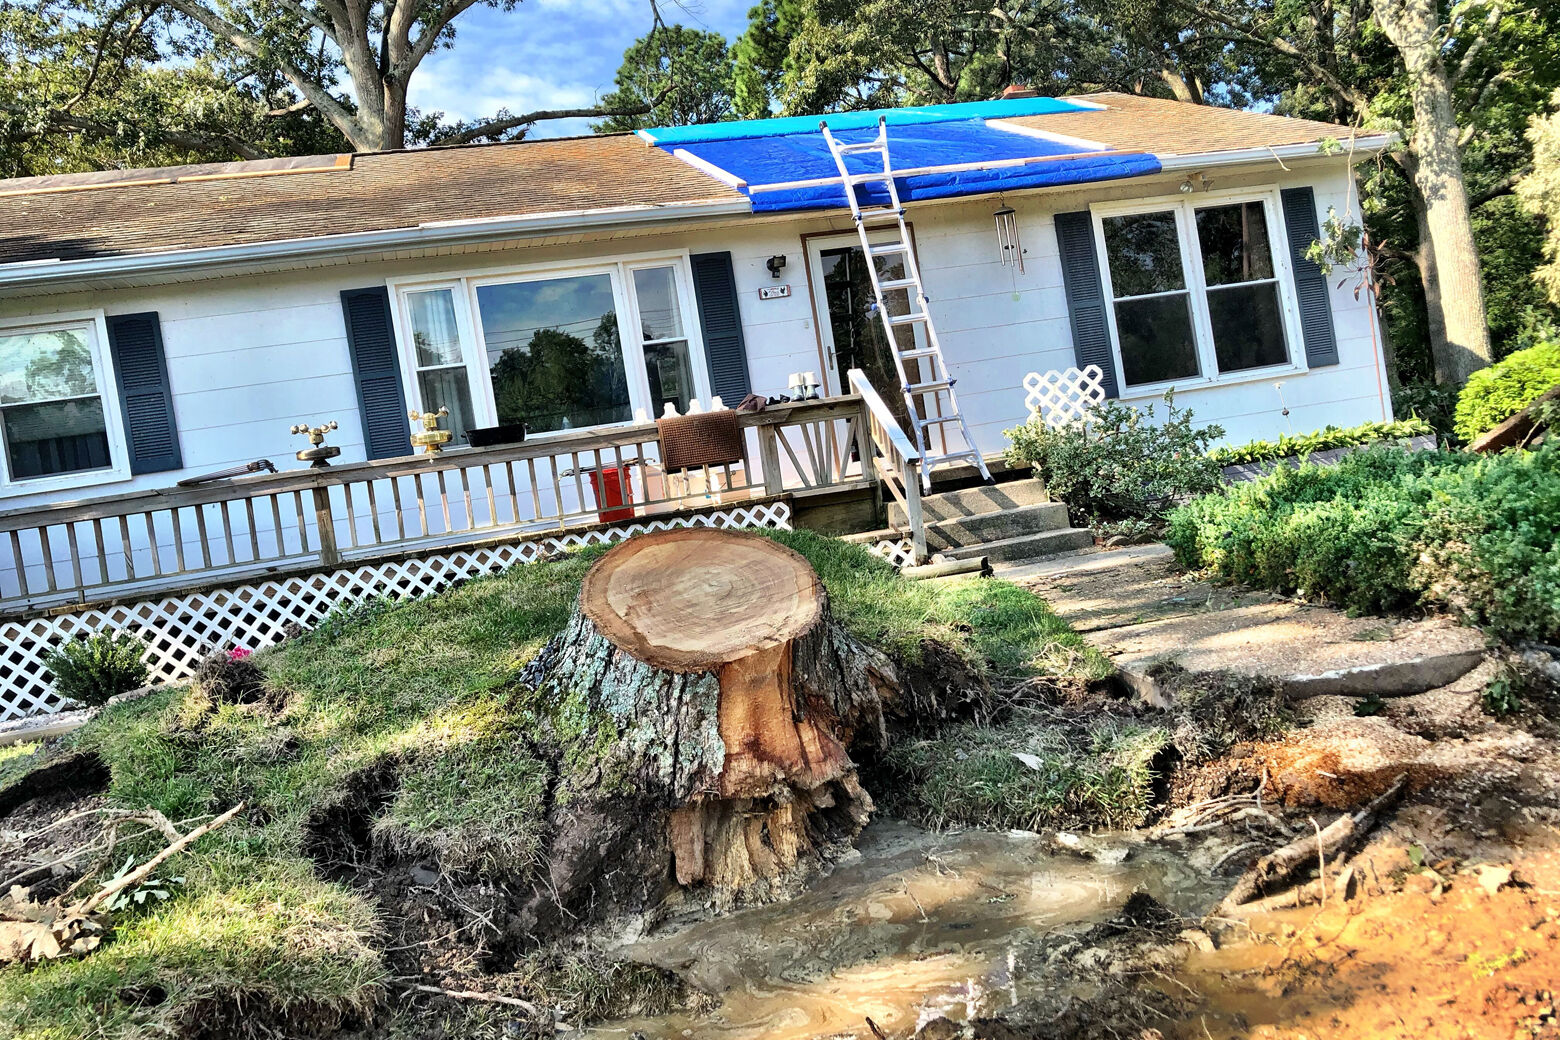 Tornado cleanup: Good things come from bad